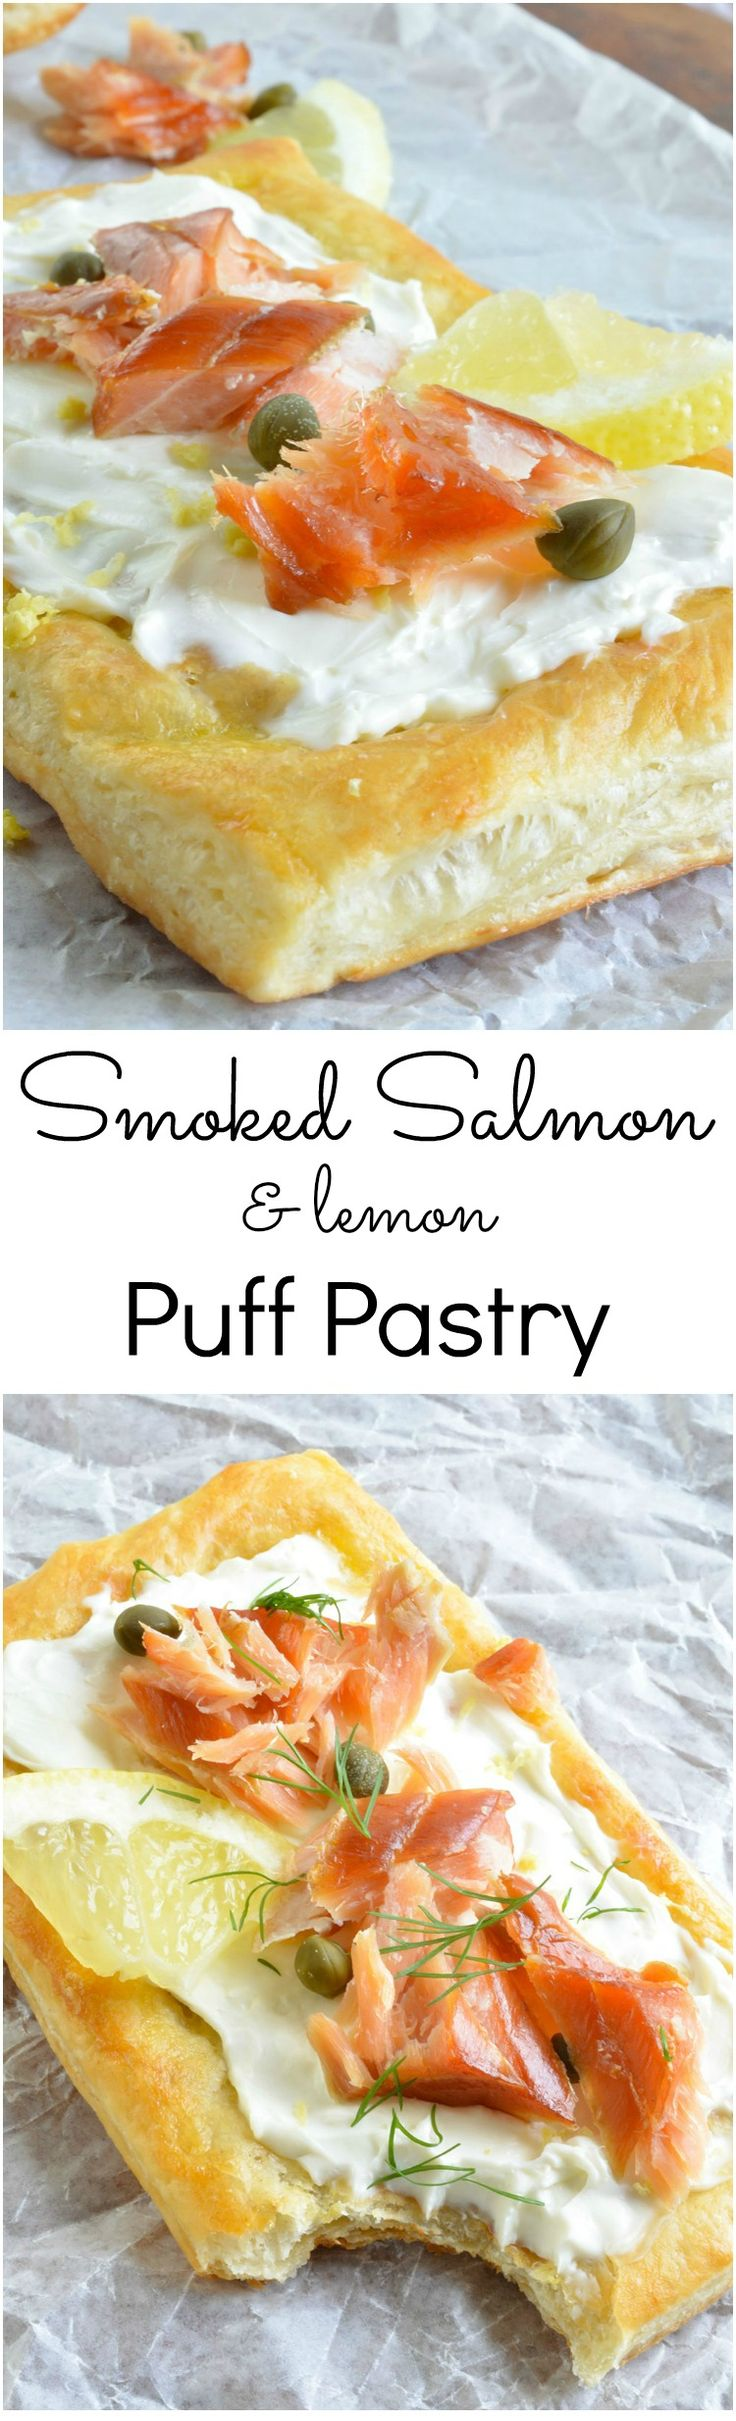 This Easy Smoked Salmon Appetizer Recipe begins with flaky puff pastry, topped with cream cheese, smoked salmon, lemon, capers and fresh dill. Perfect for an appetizer or breakfast! AD